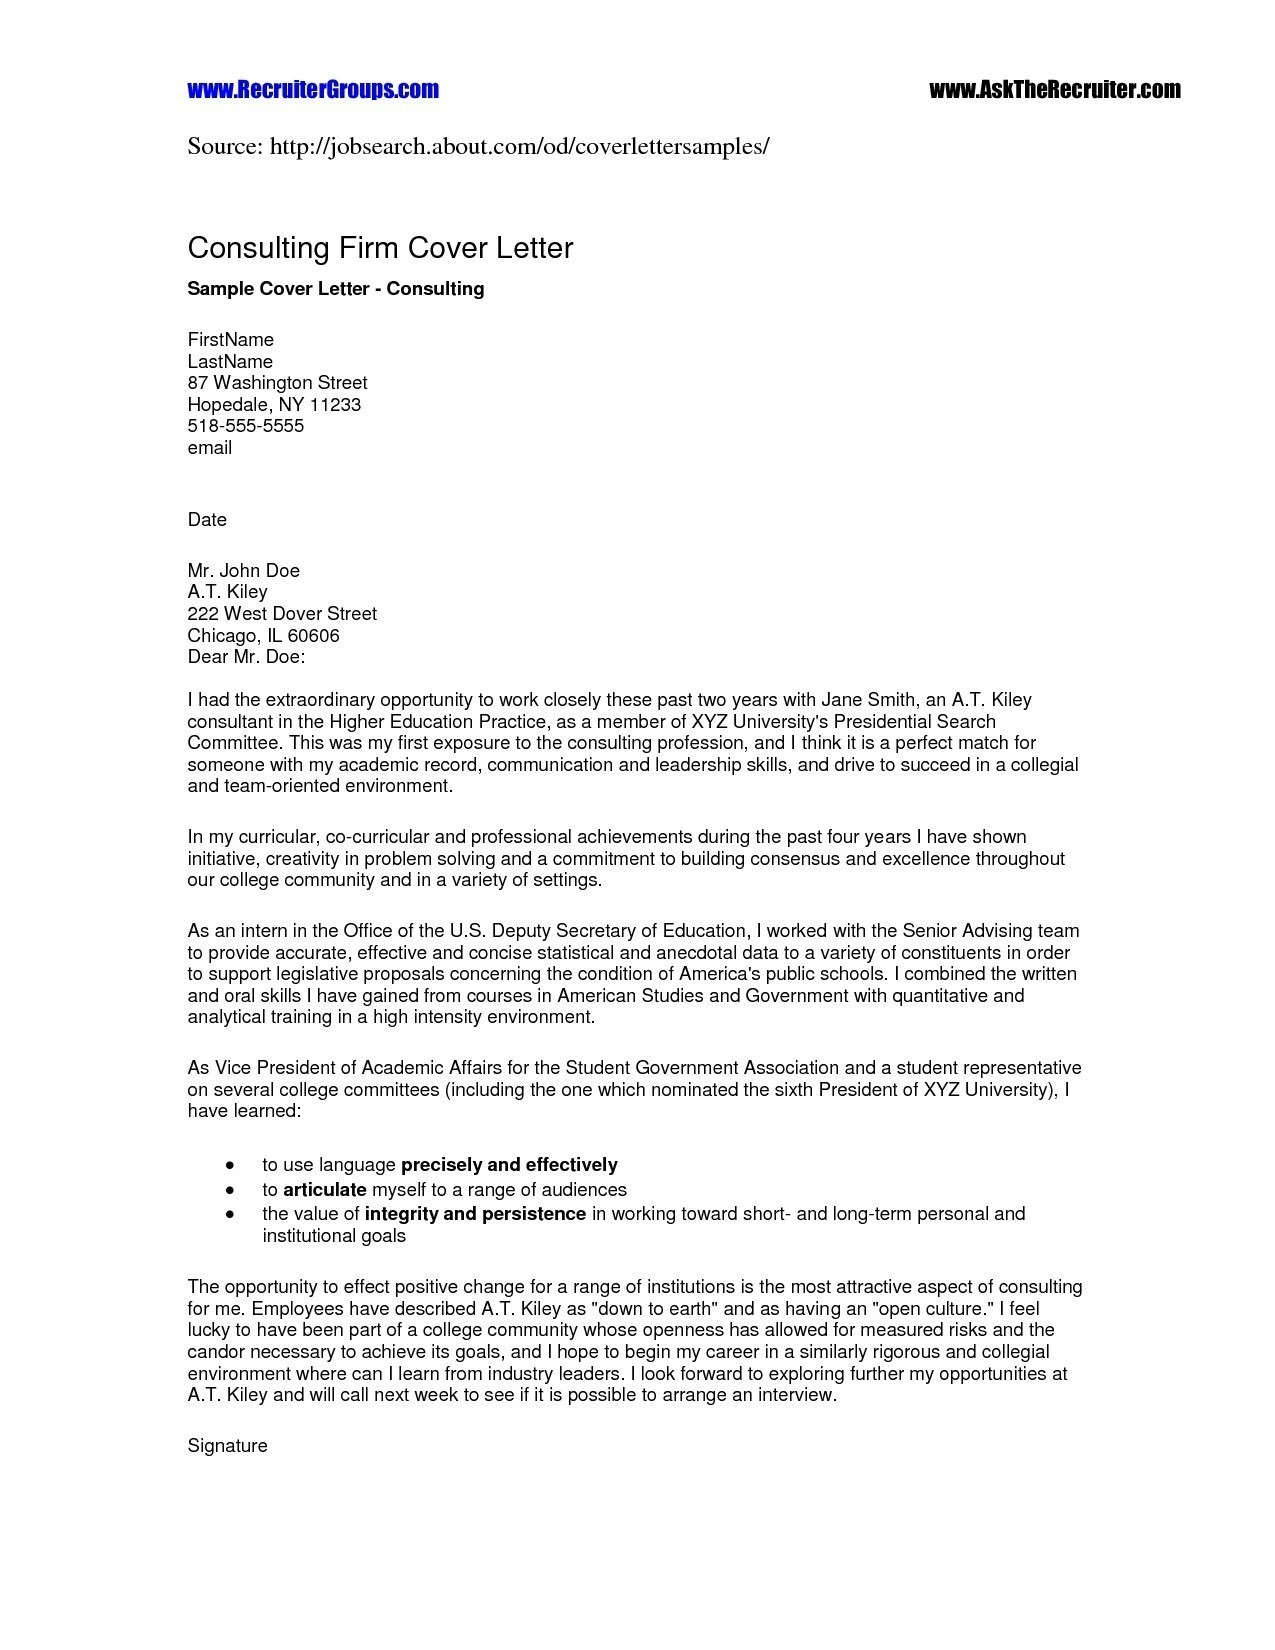 Cover Letter format Template - Job Resume Cover Letter Template Unique Job Application Letter